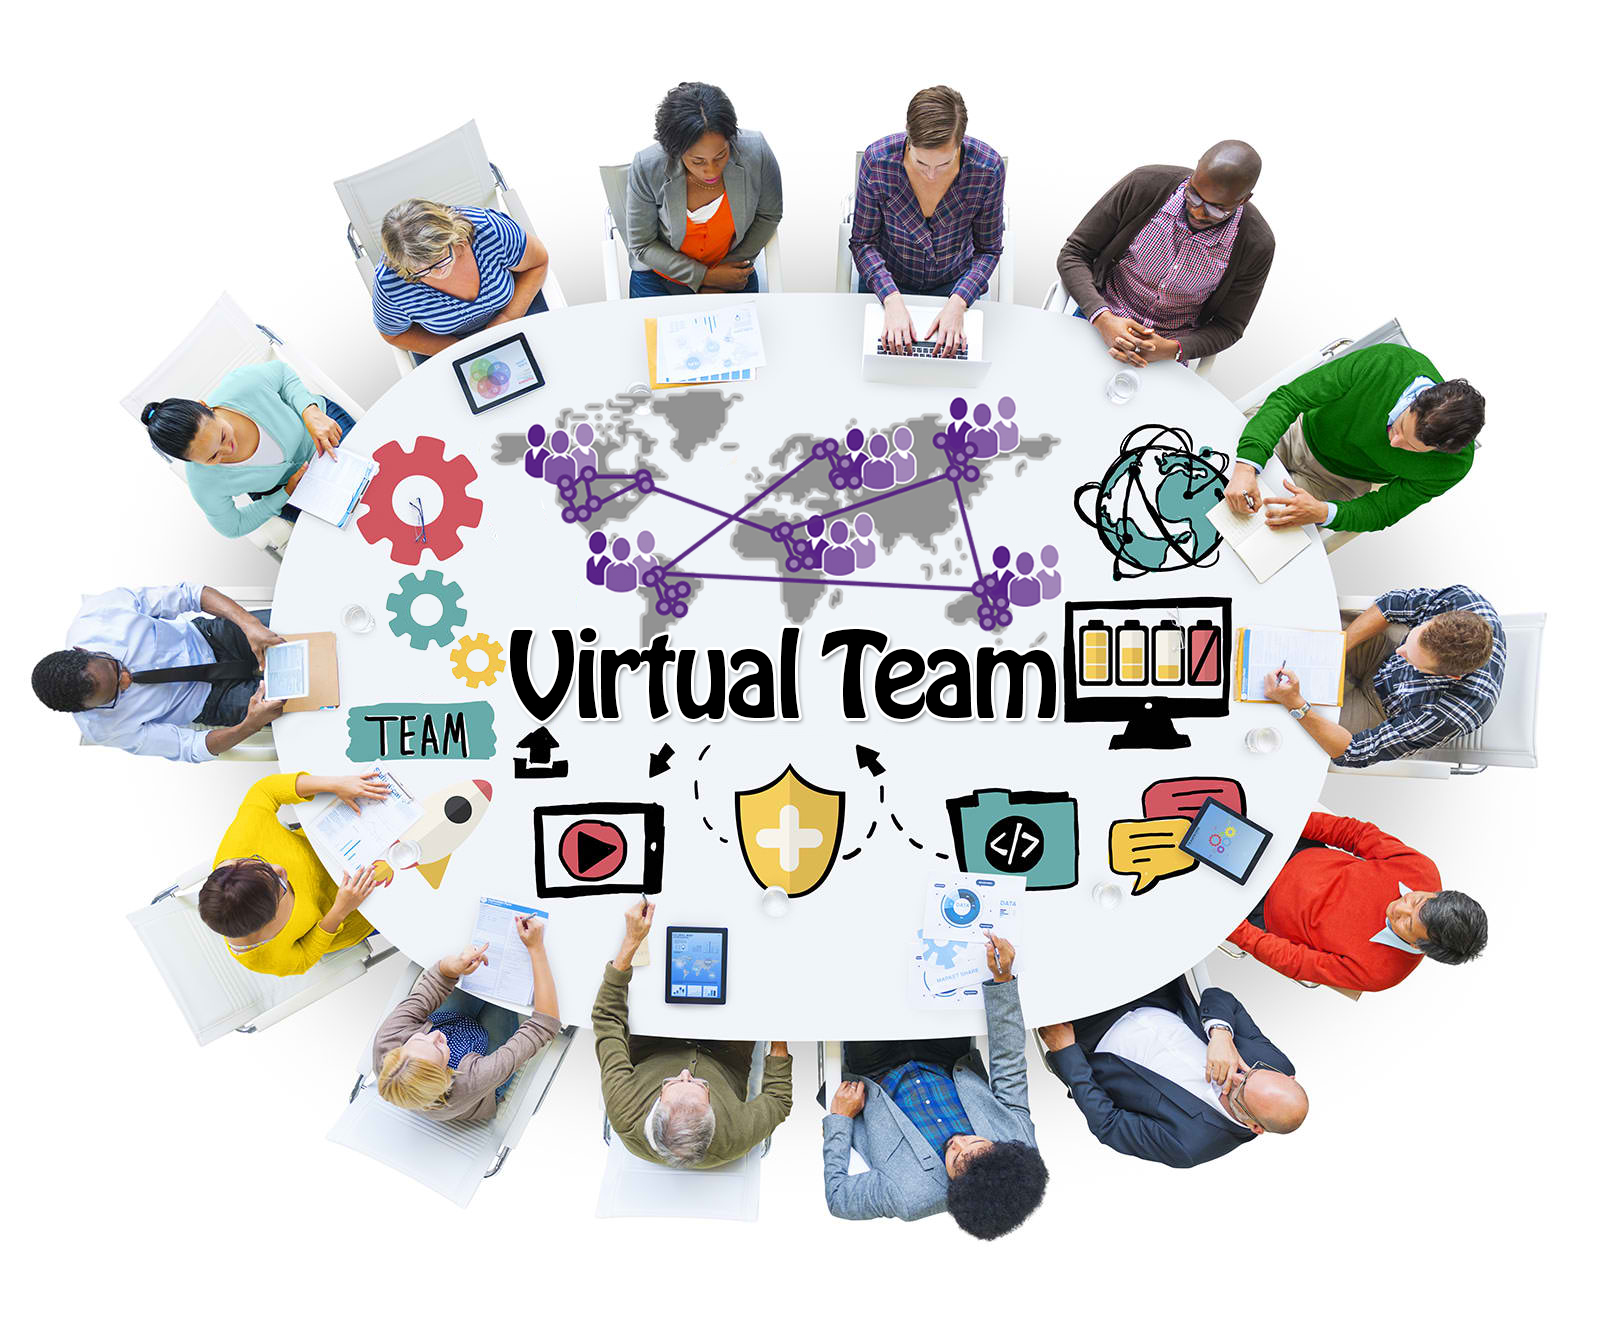 working in a virtual team Looking for tips on how to make your virtual teams successful check out these teamwork tips.